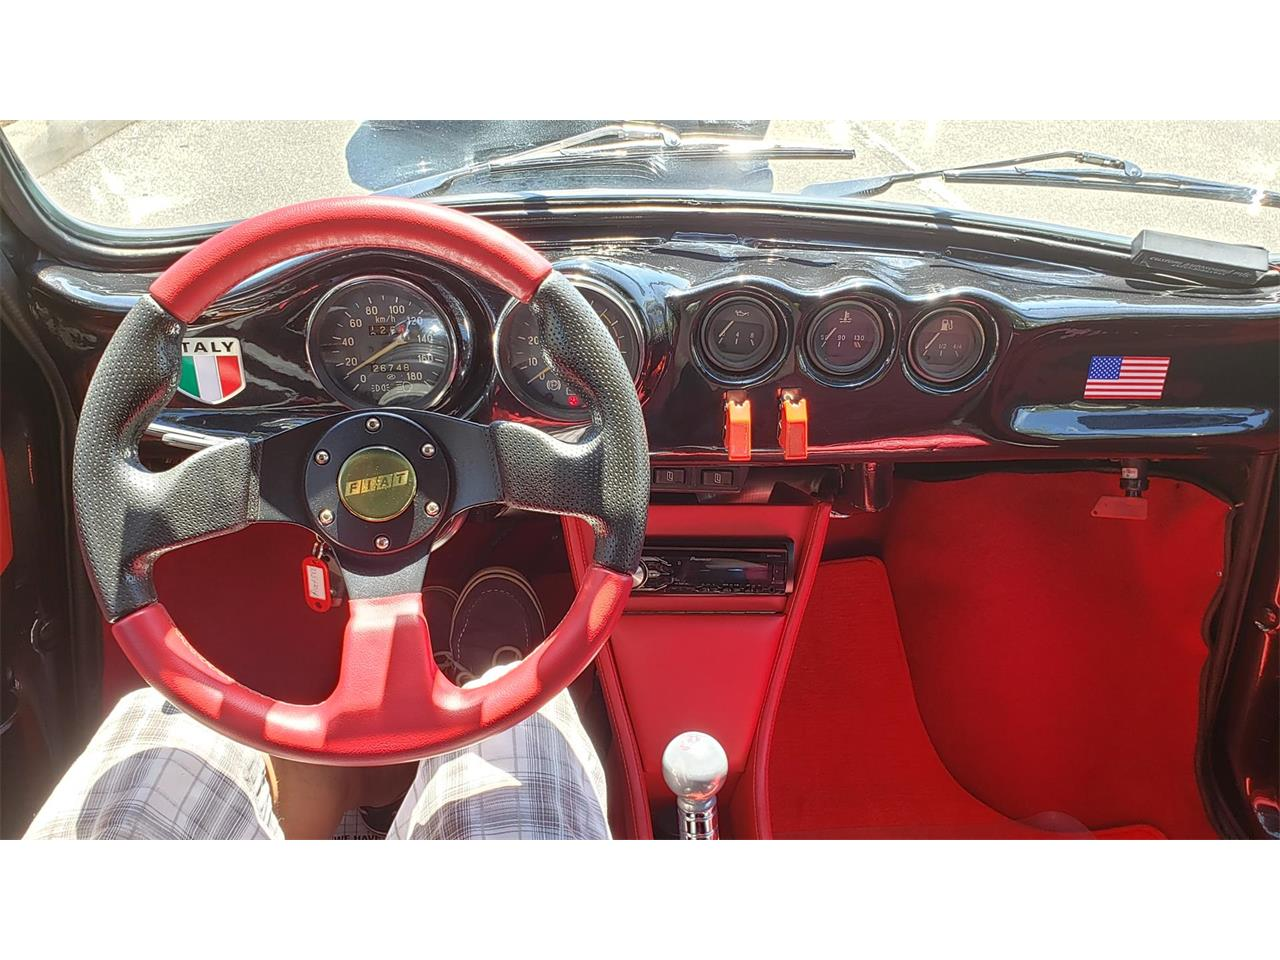 1971 Fiat 500L (CC-1239595) for sale in FORT MYERS, Florida